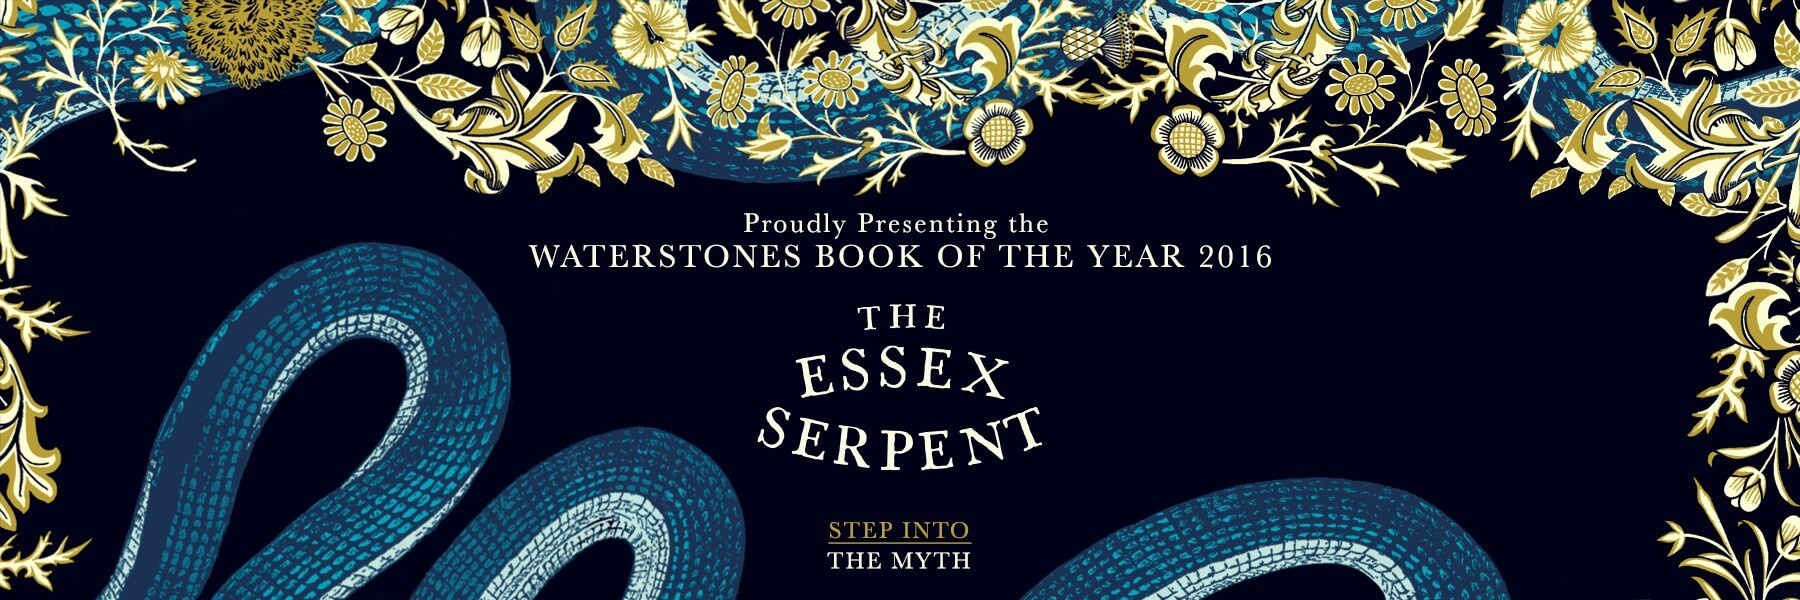 Proudly Presenting the Waterstones Book of the Year 2016